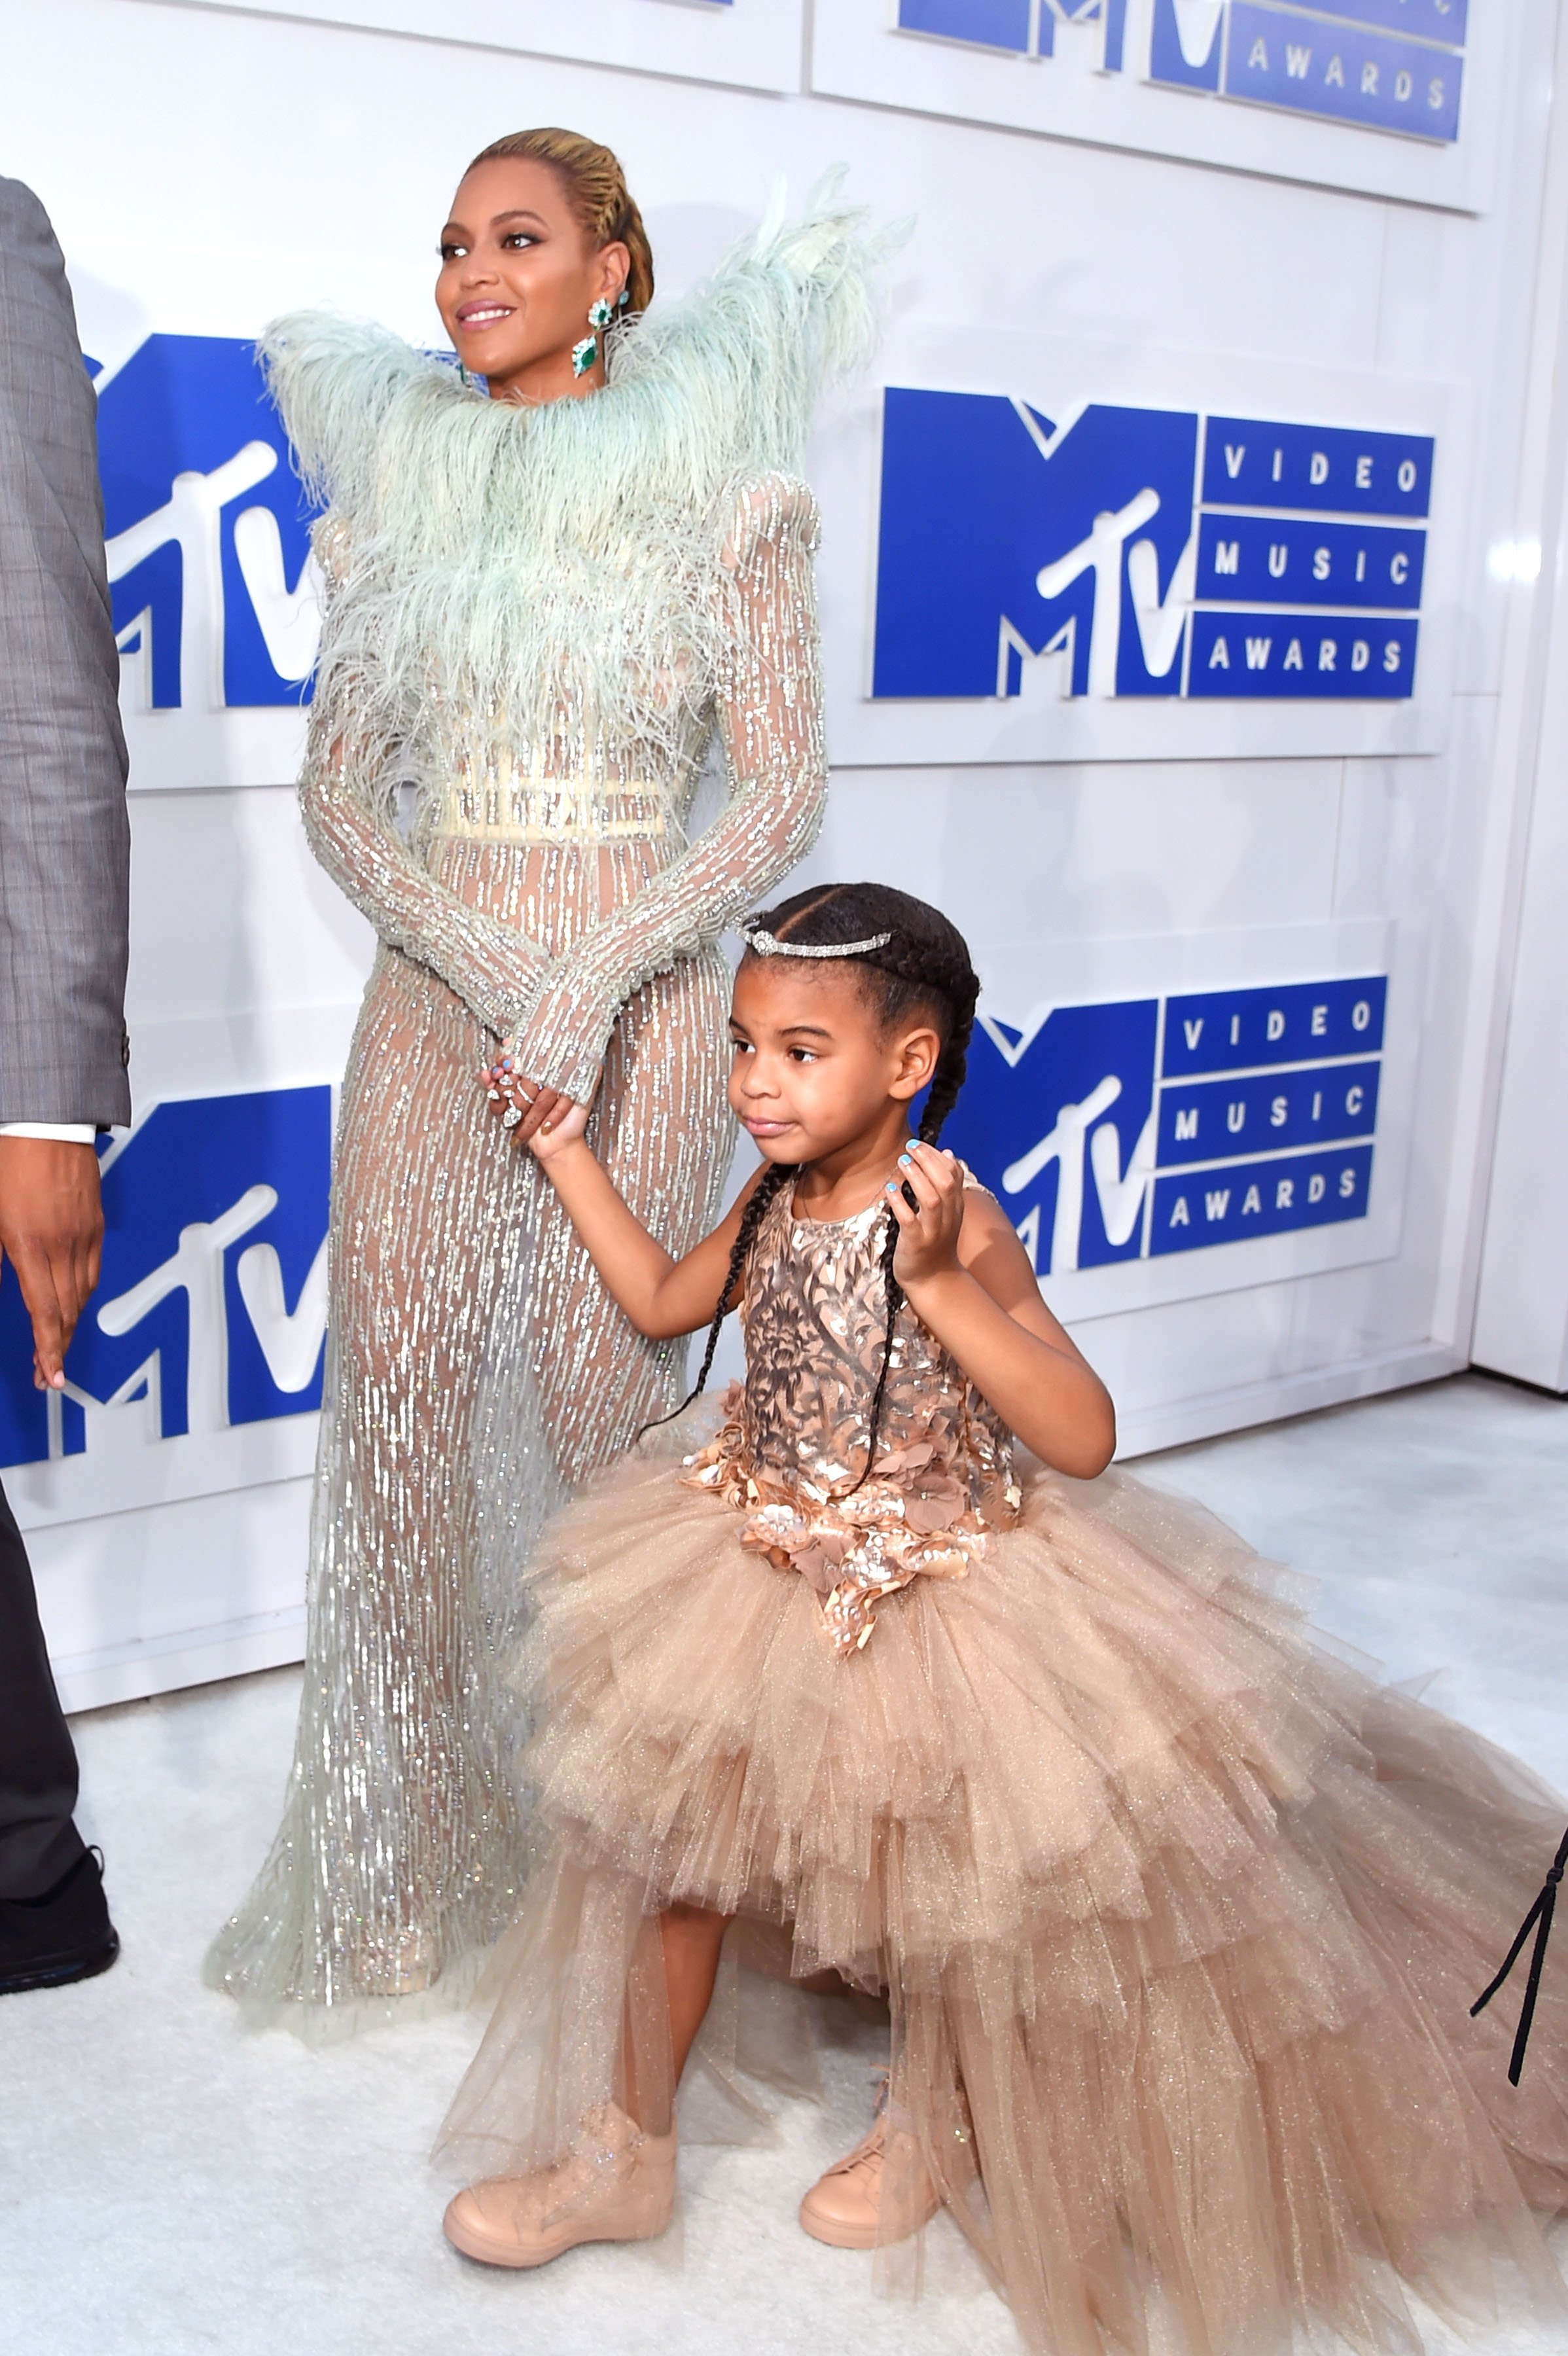 Beyonce and Blue Ivy at the 2016 MTV Video Music Awards in New York City on Aug. 28, 2016. | Photo: Getty Images